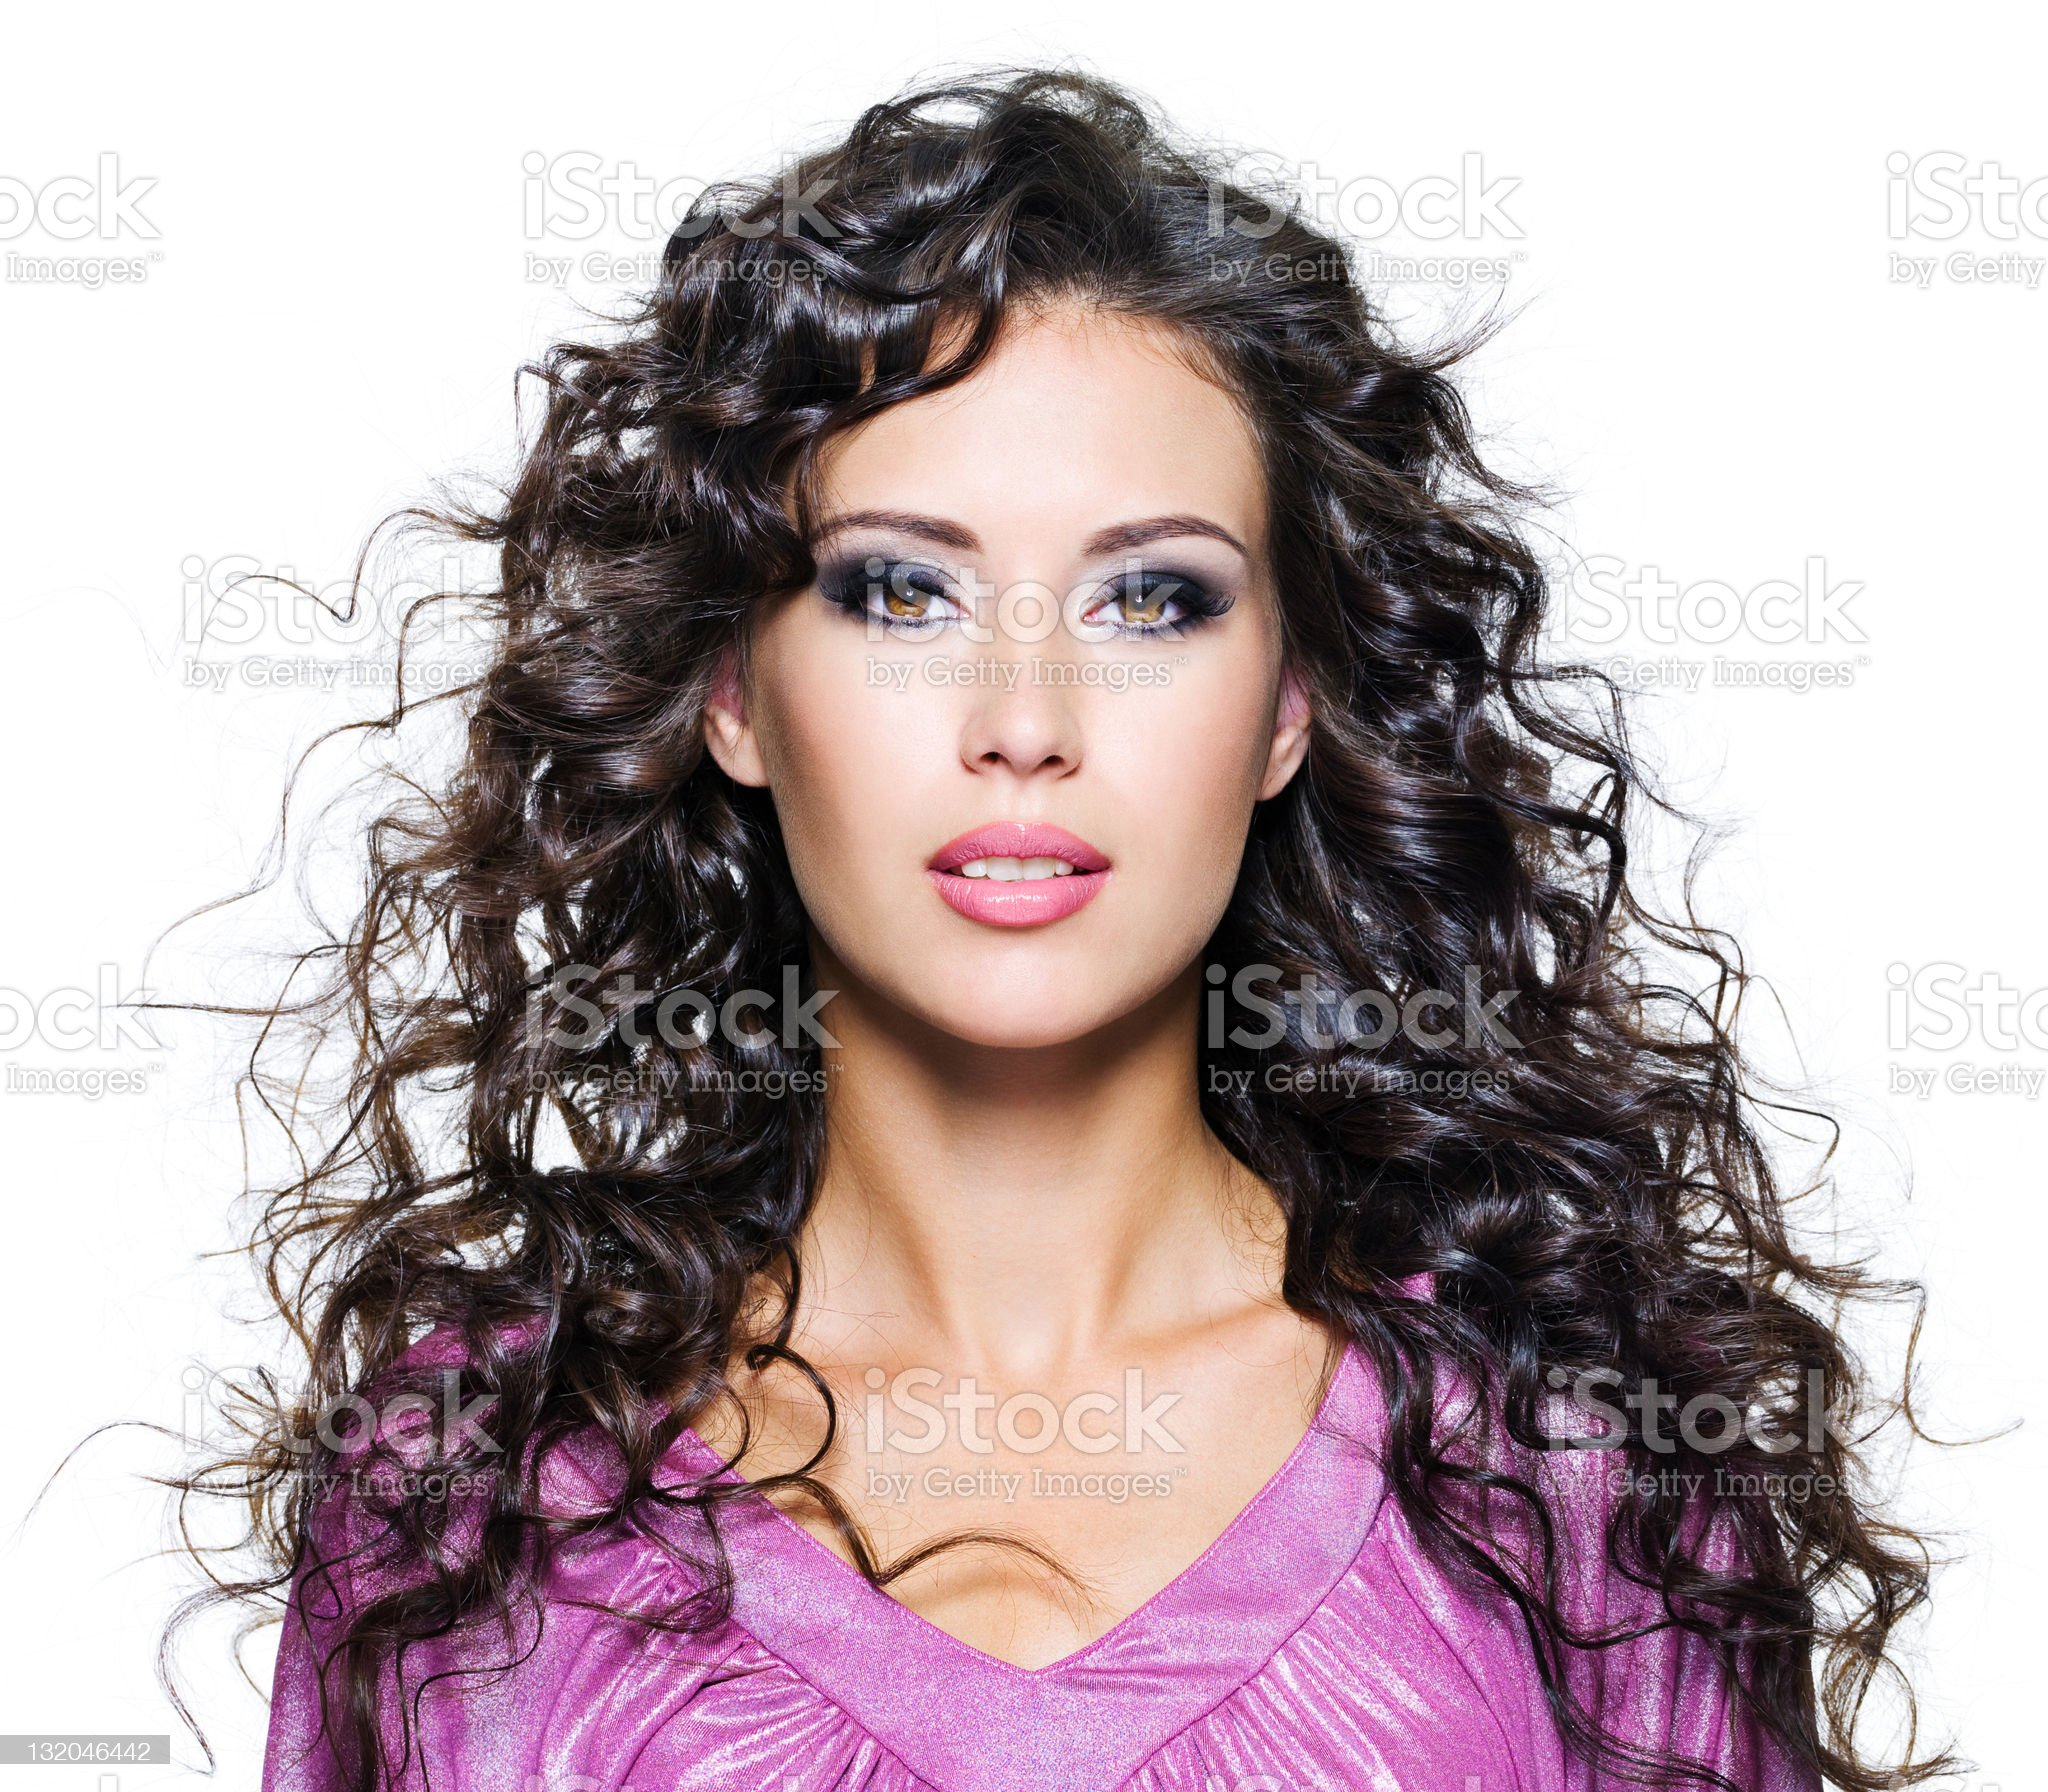 The face of a beautiful brunette woman royalty-free stock photo